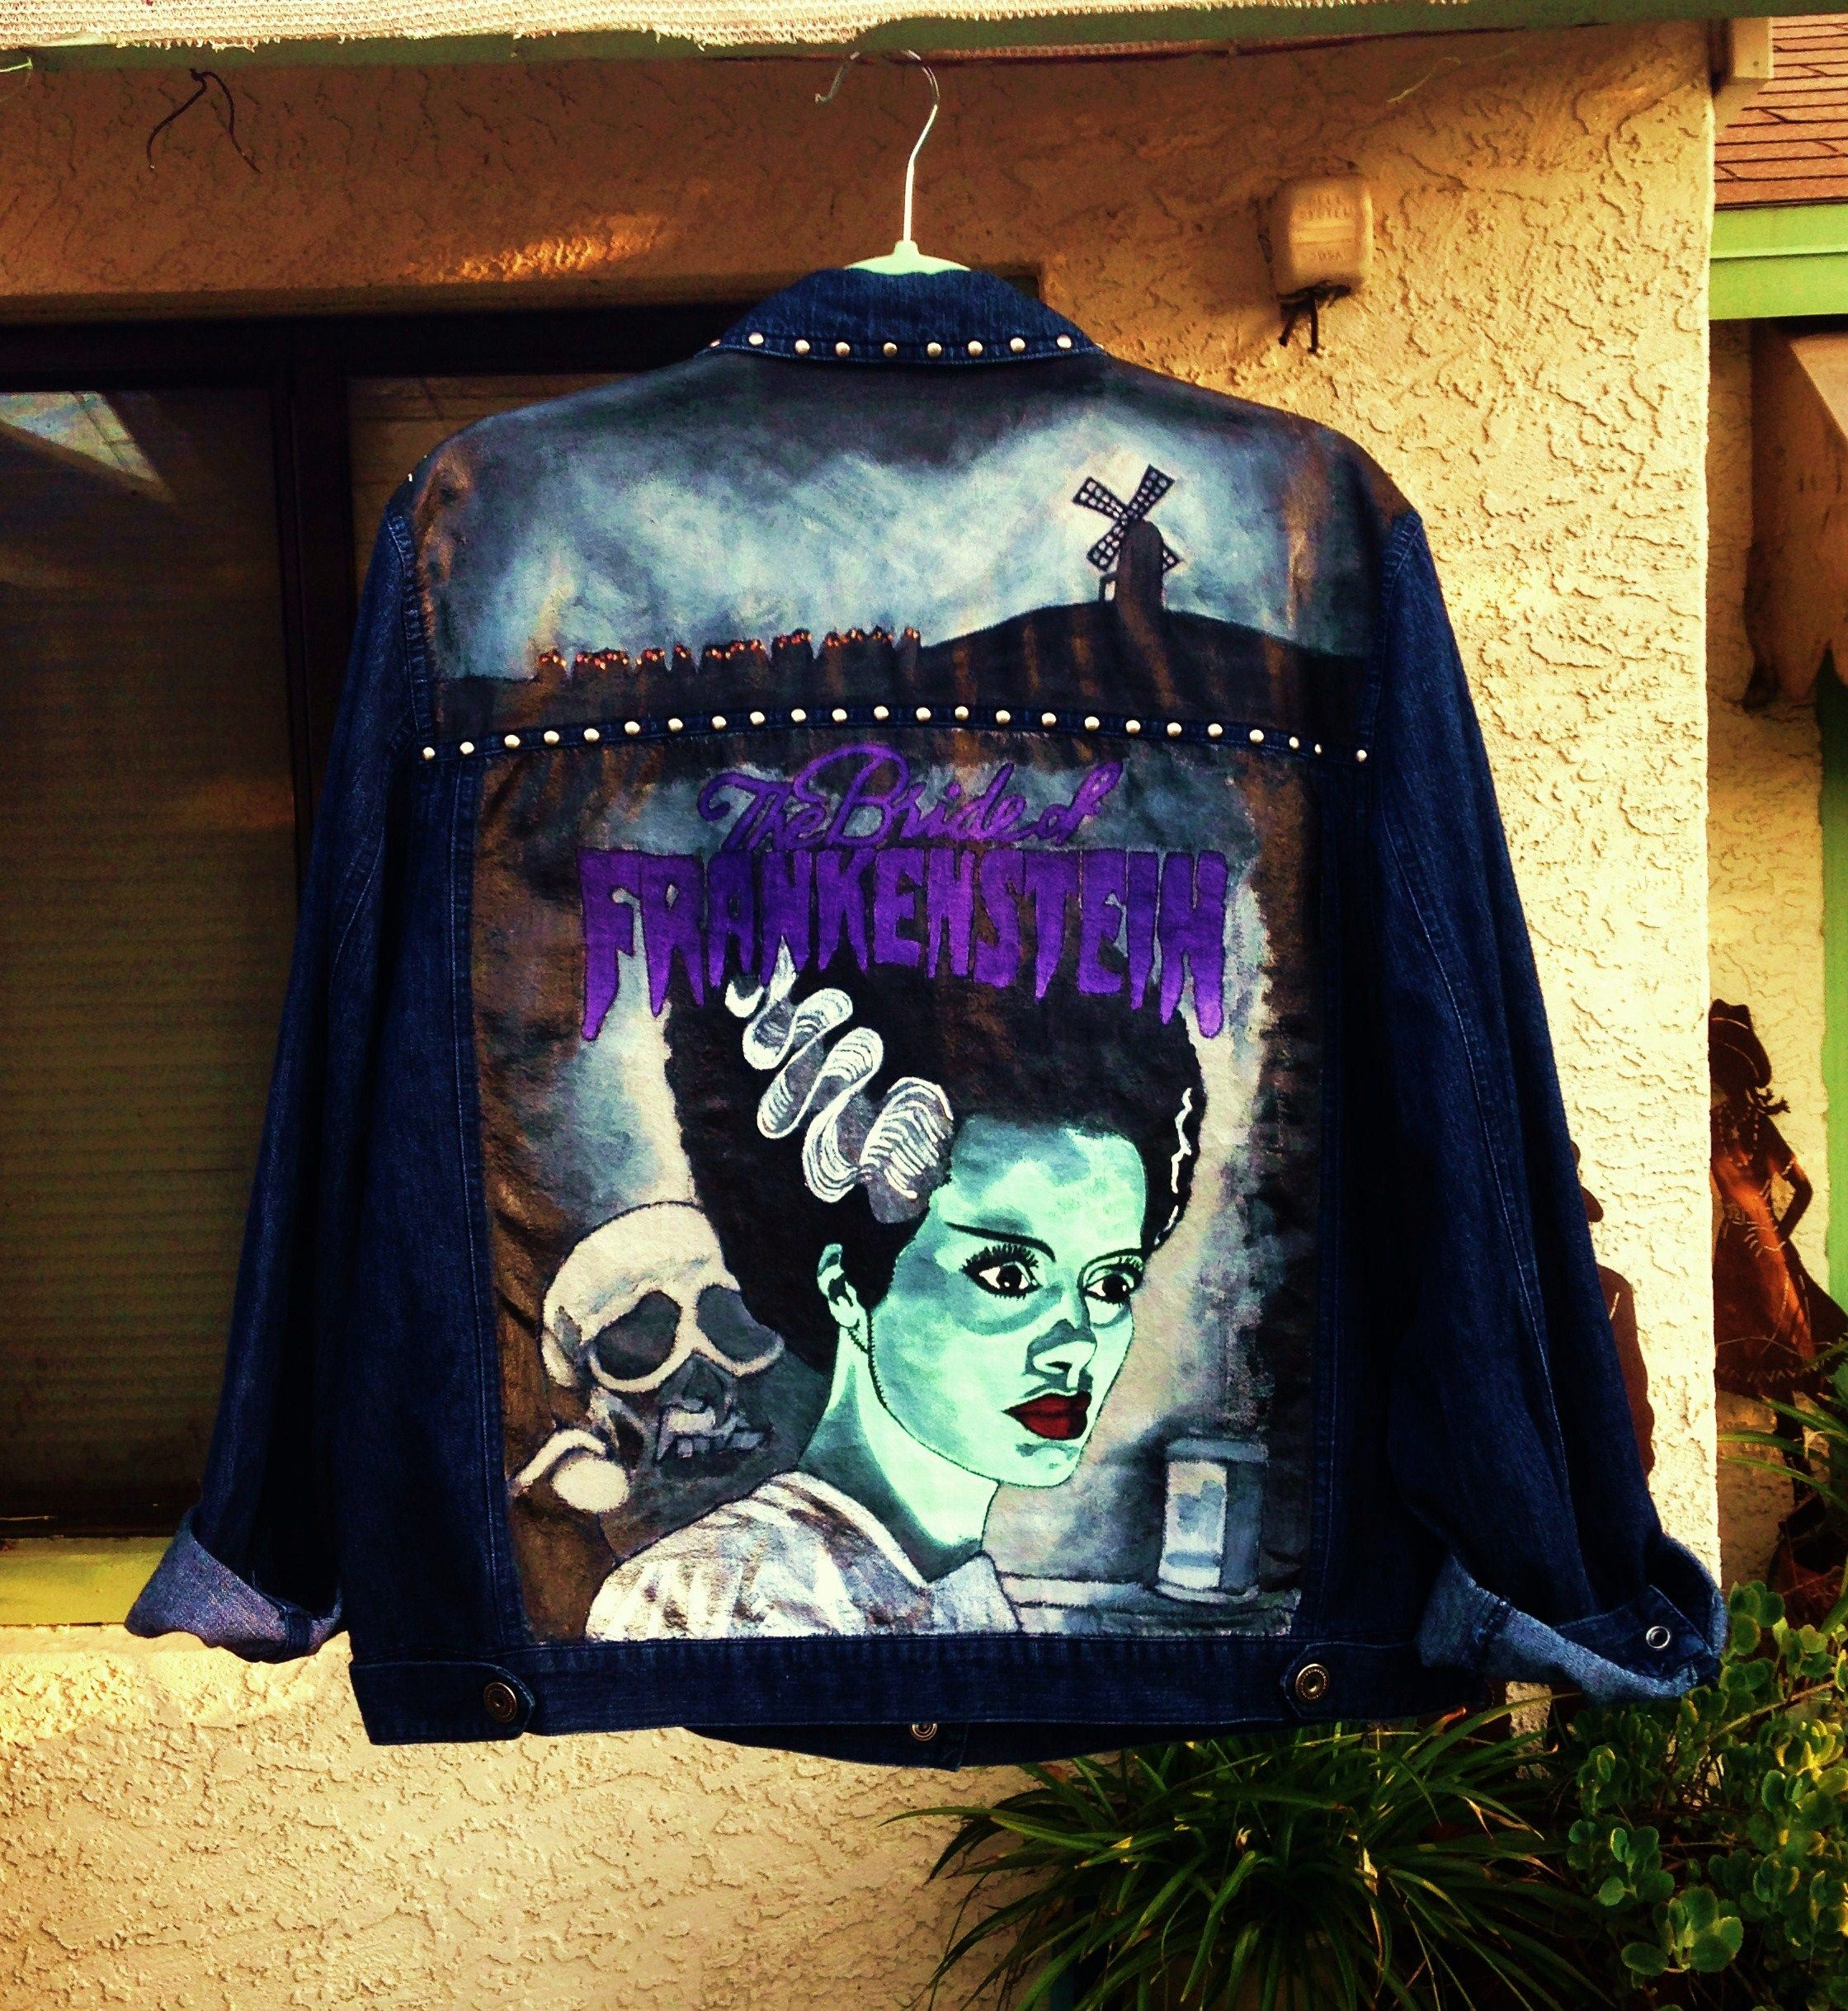 The bride of frankenstein custom painted on the back of a denim